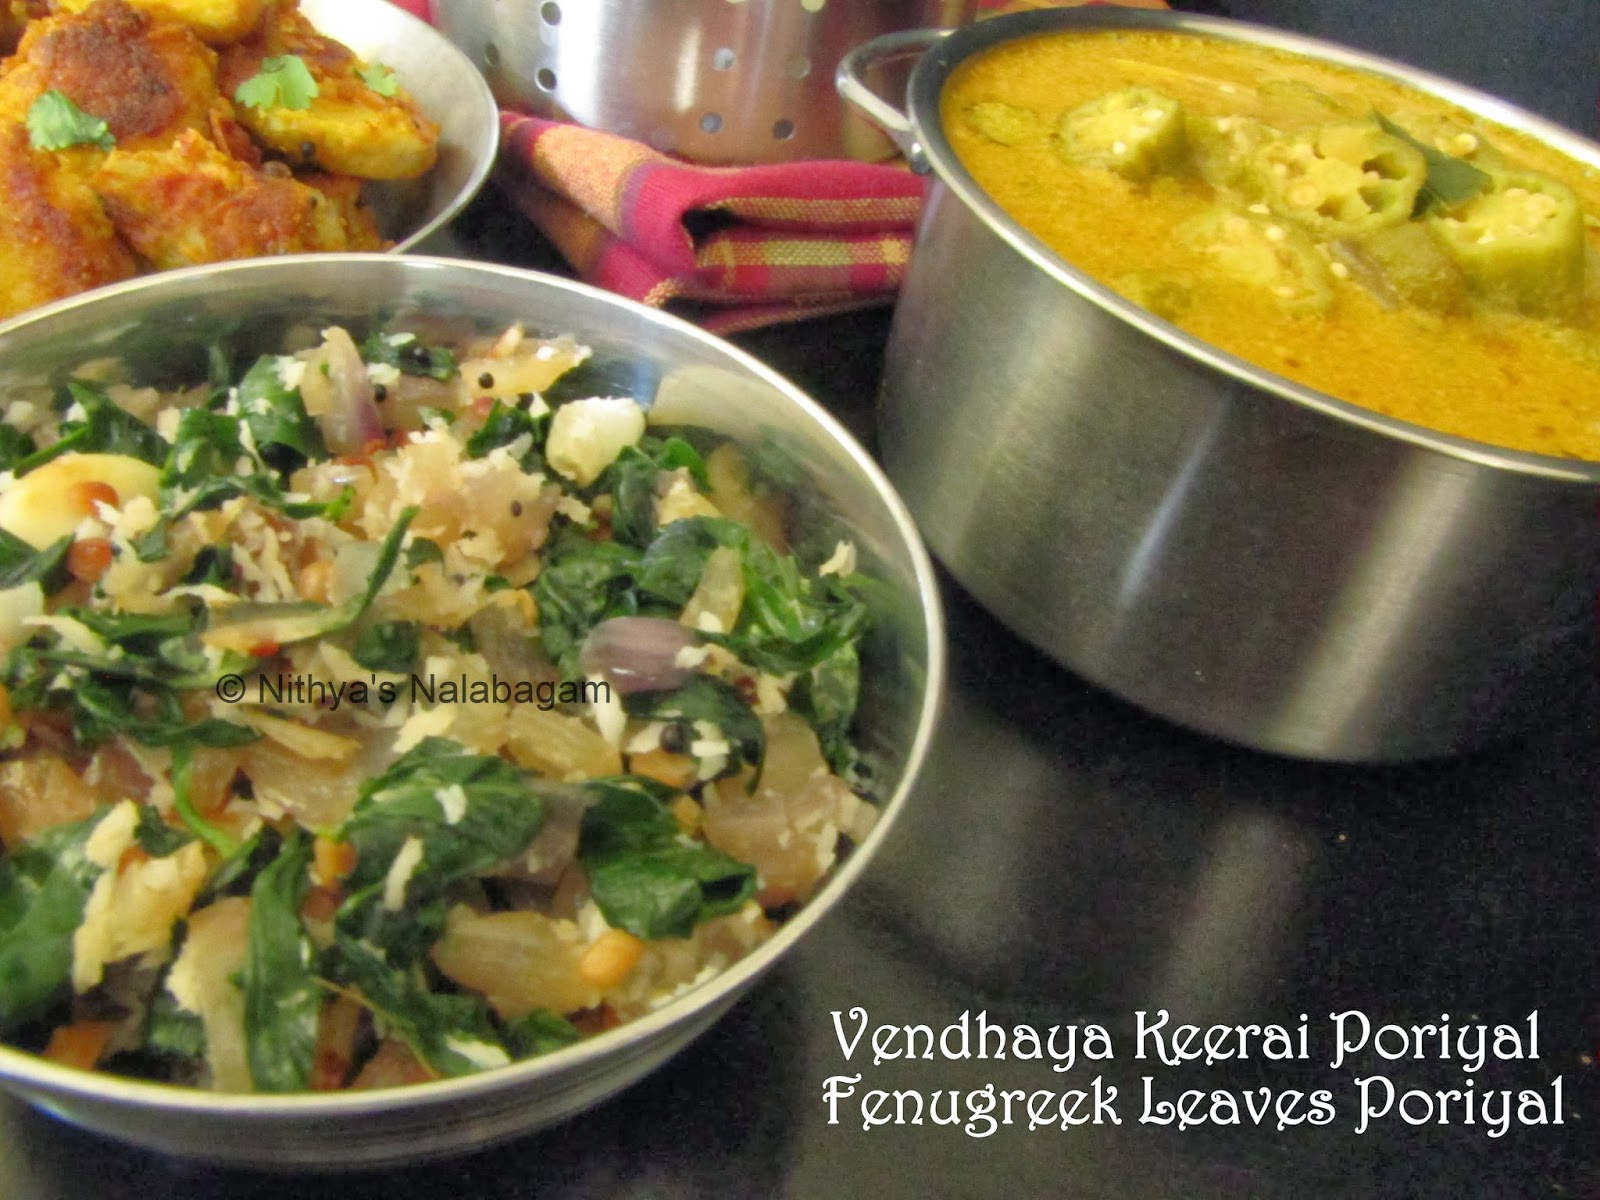 Vendhaya Keerai Poriyal | Fenugreek Leaves Dry Fry